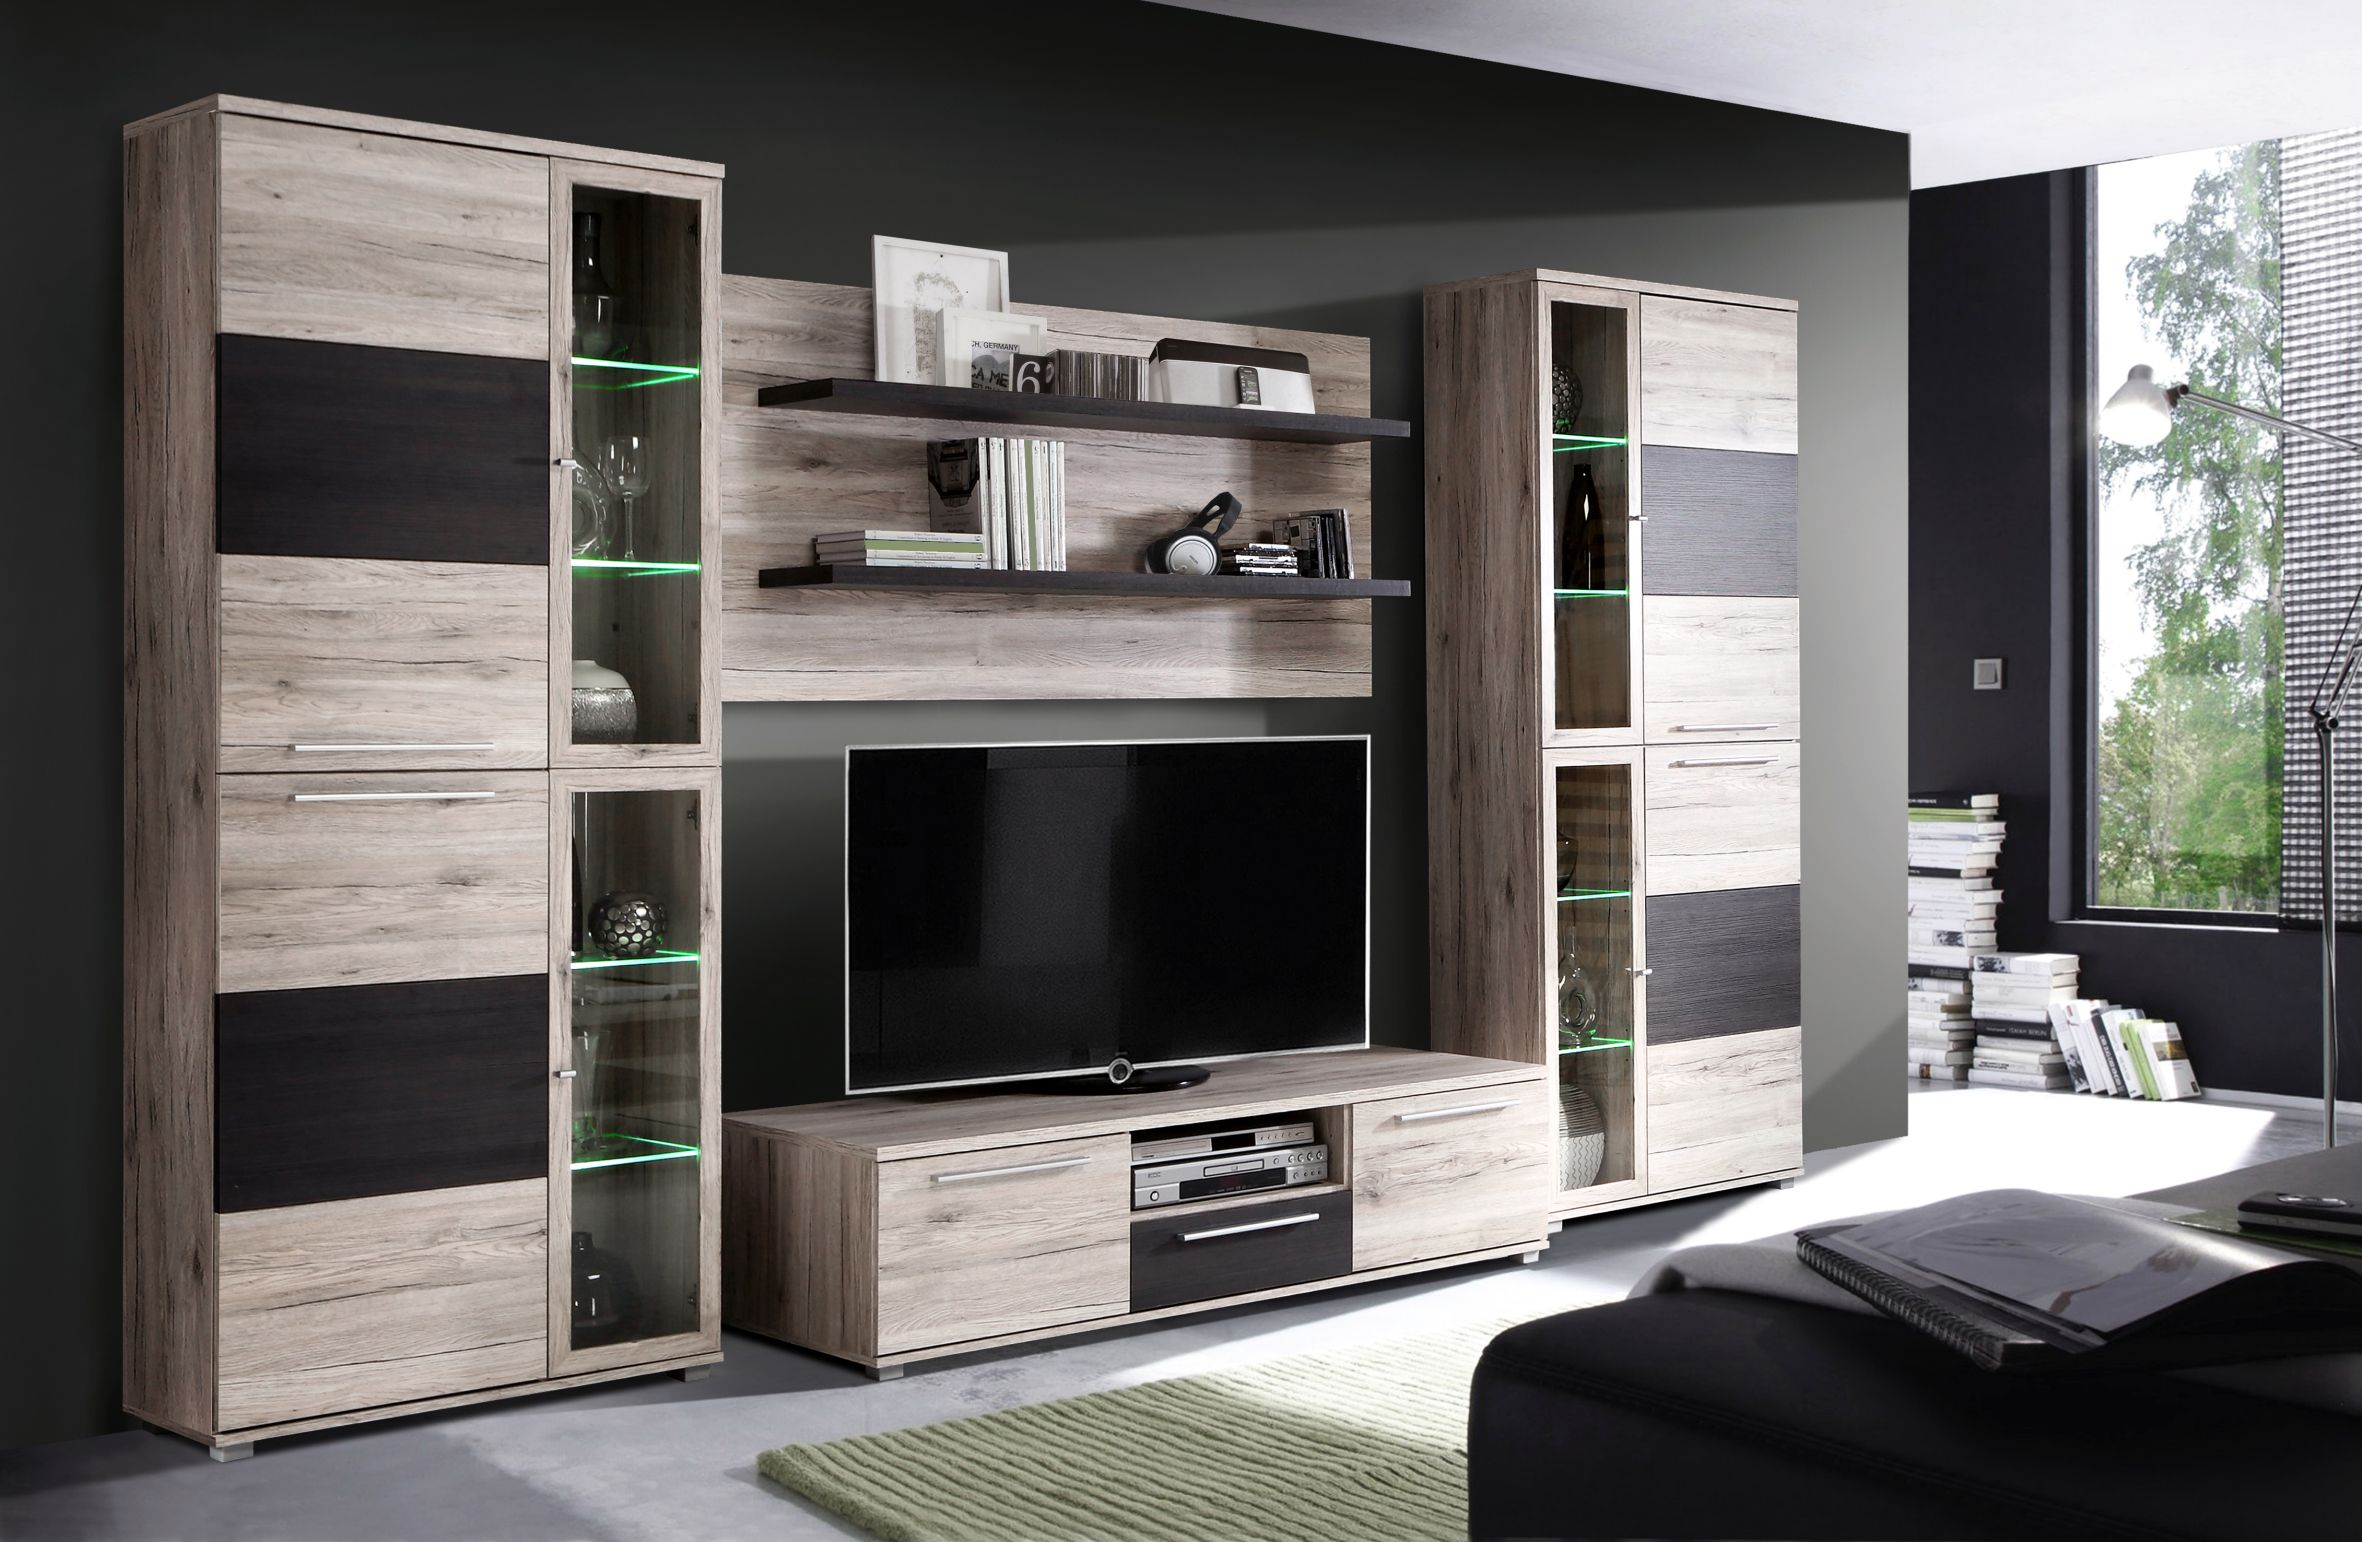 wohnzimmerm bel mit viel stauraum m belideen. Black Bedroom Furniture Sets. Home Design Ideas